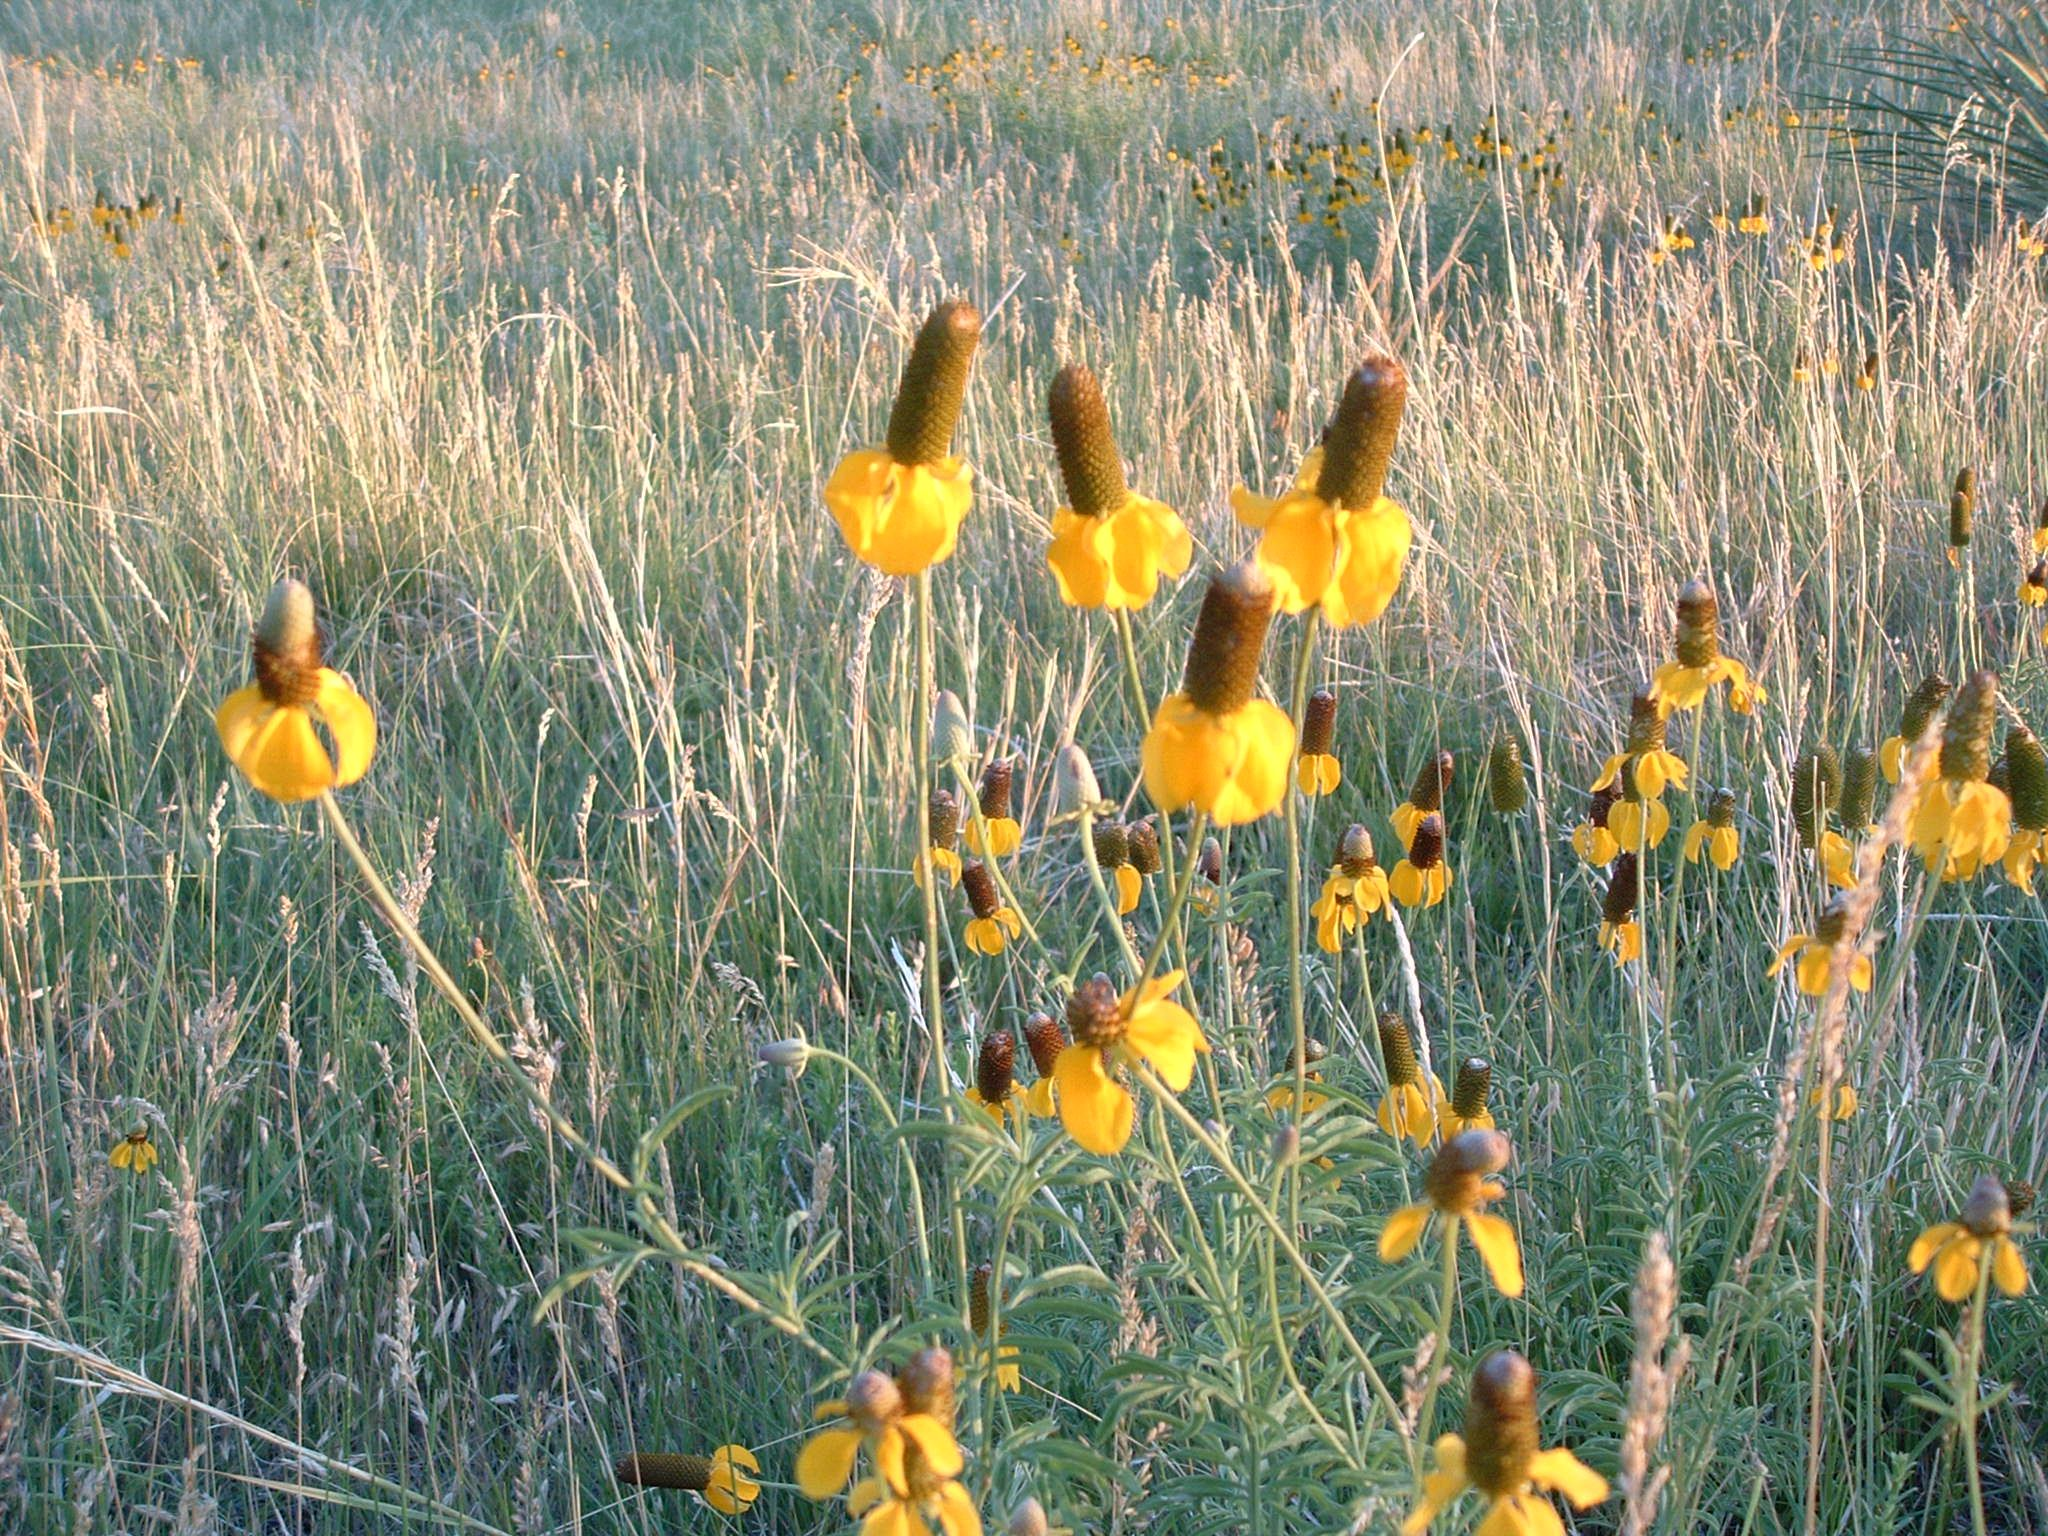 Yellow coneflowers in bloom